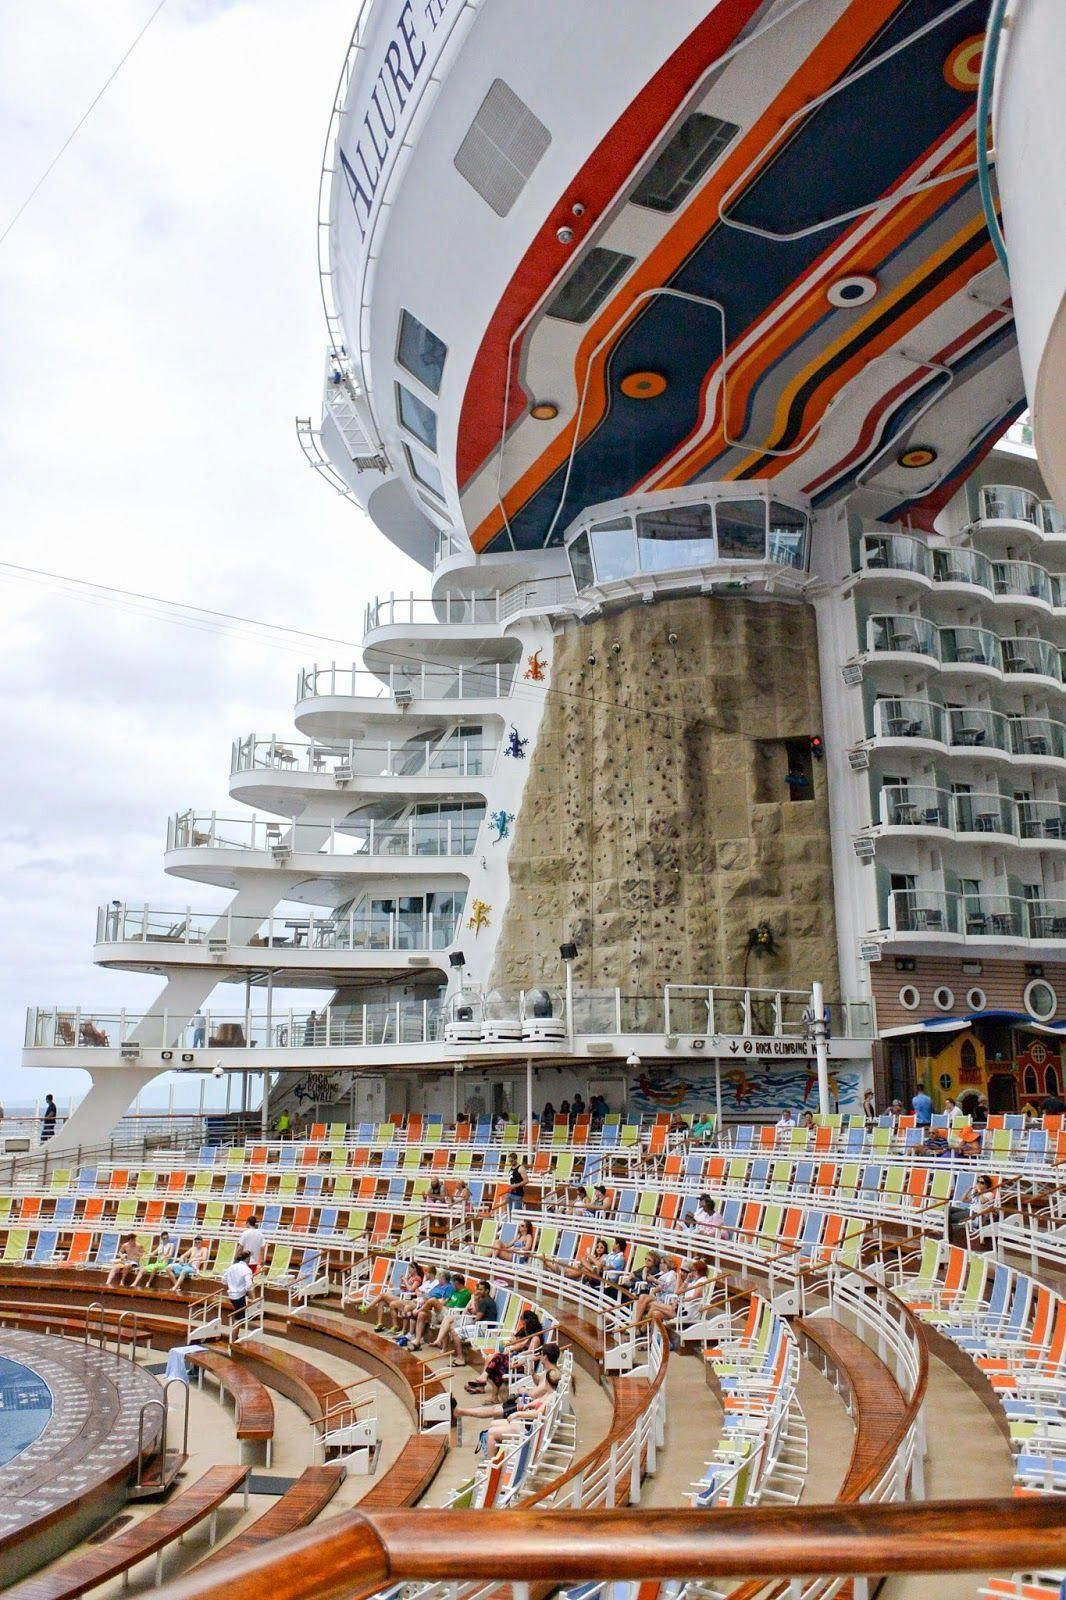 How To Get Alcohol On A Cruise Ship 2014